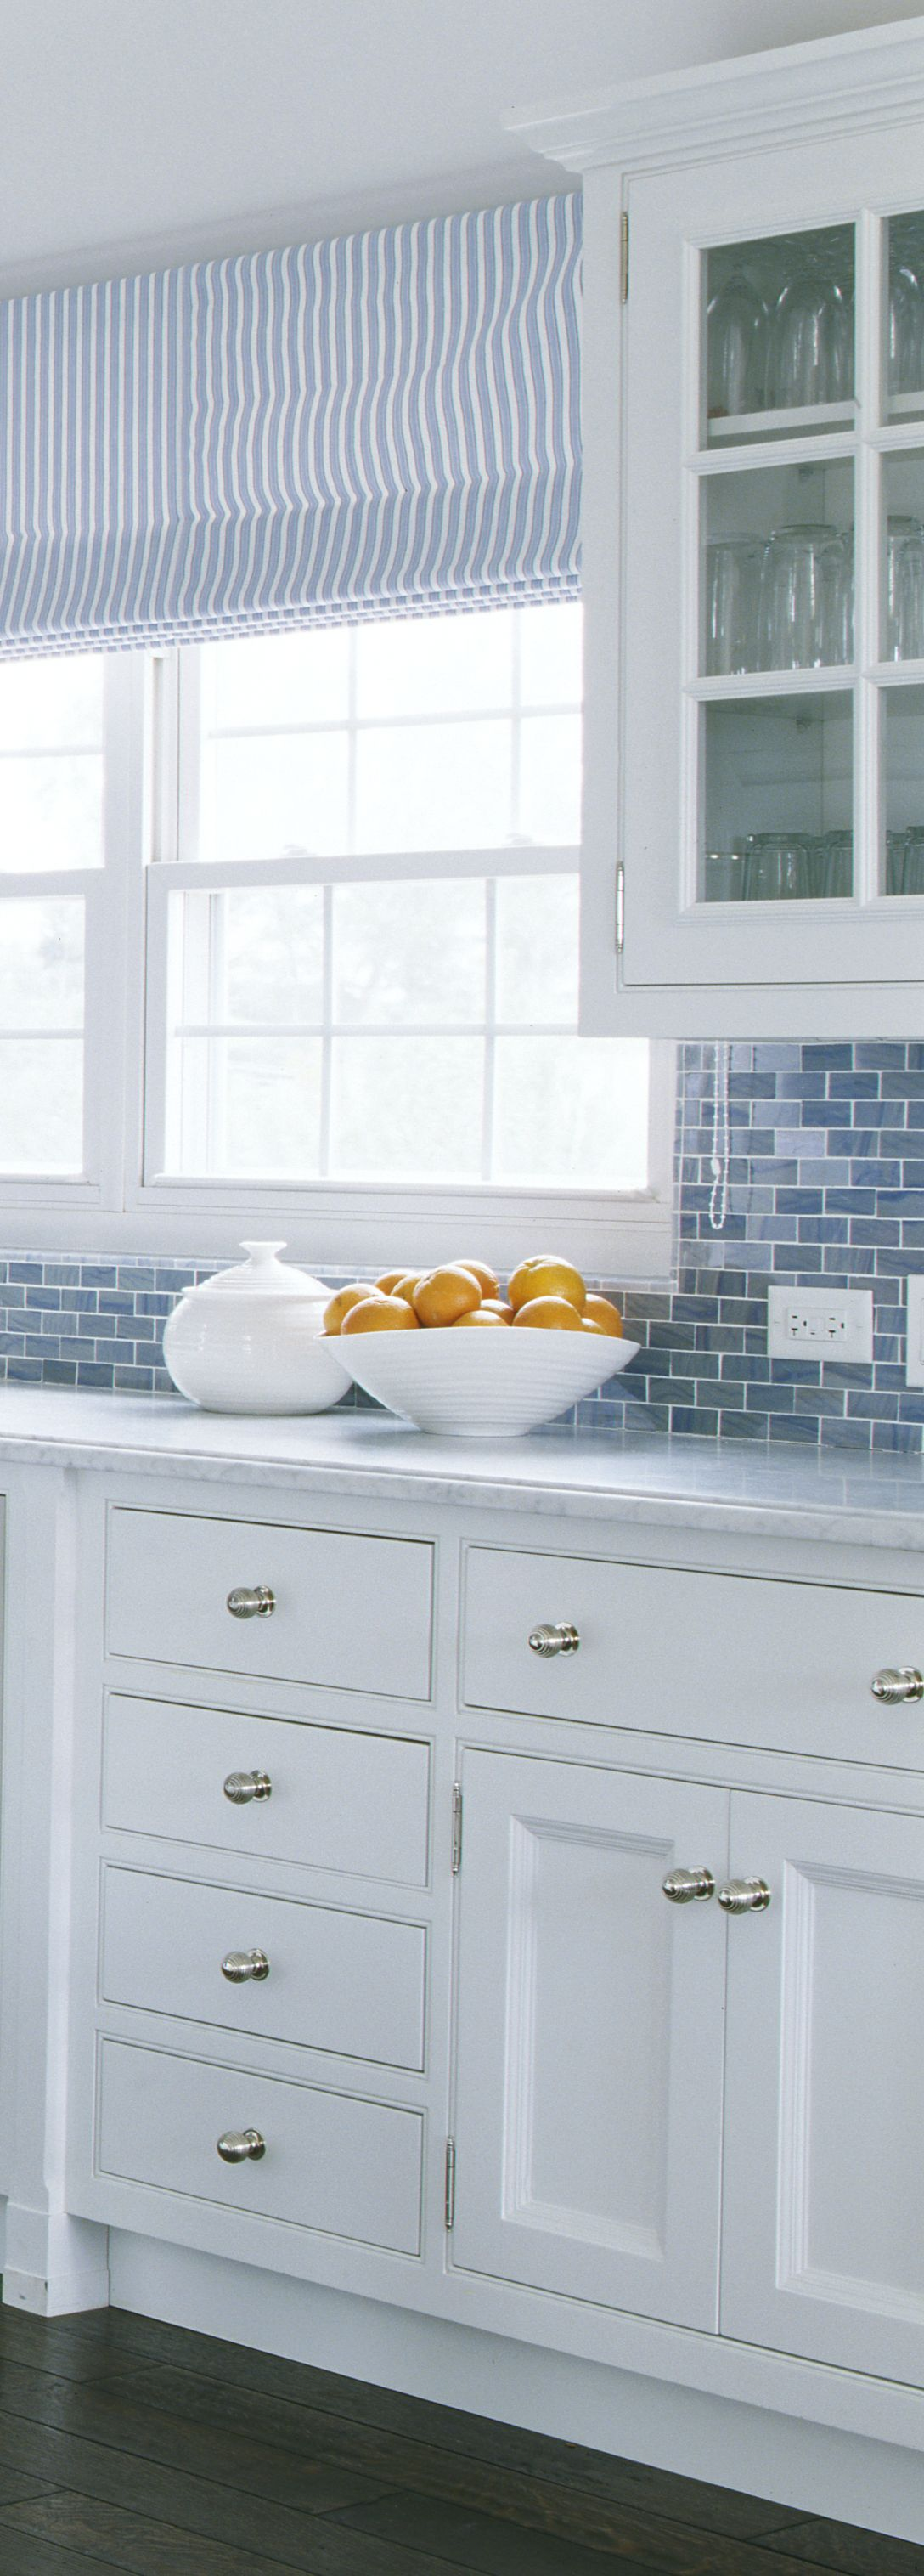 Subway Tiles | For the Home | Pinterest | Coastal, Kitchens and Blue ...